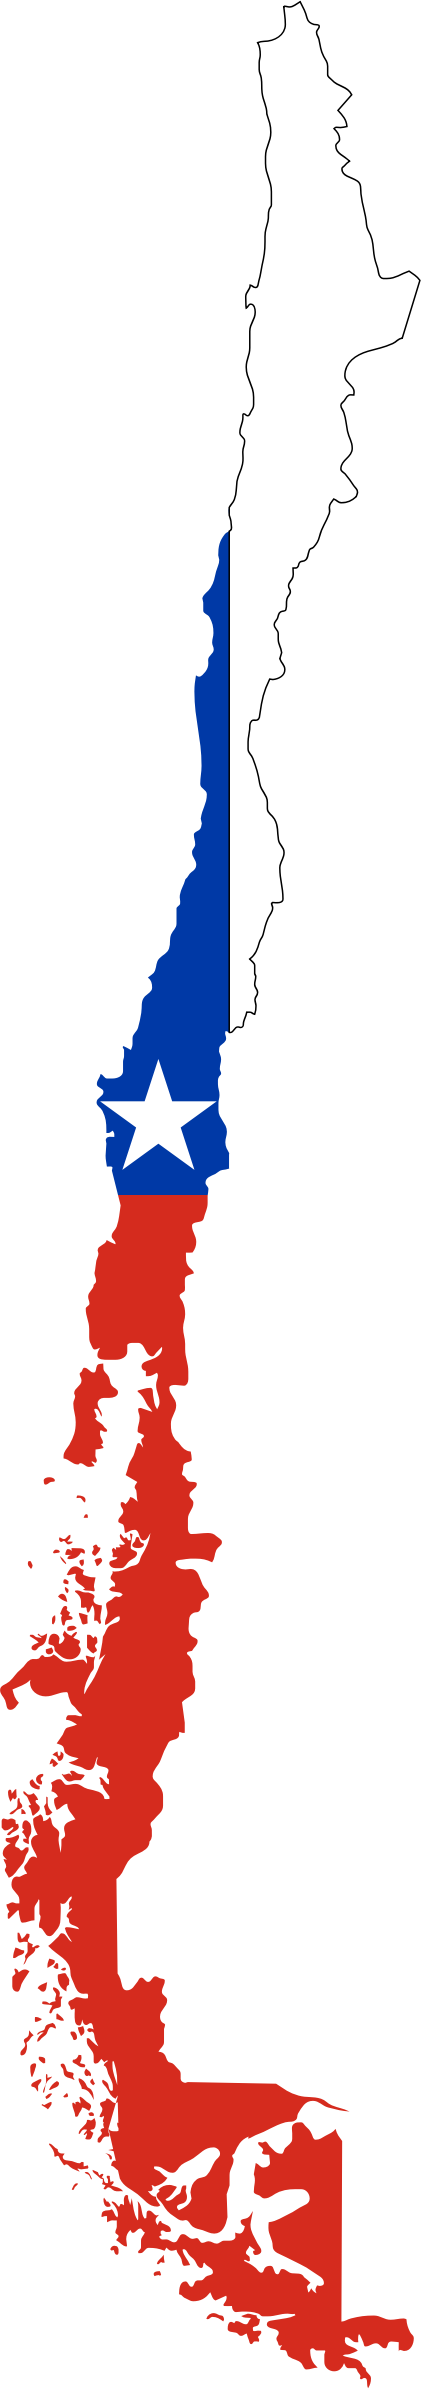 Country clipart country flag. Chile map